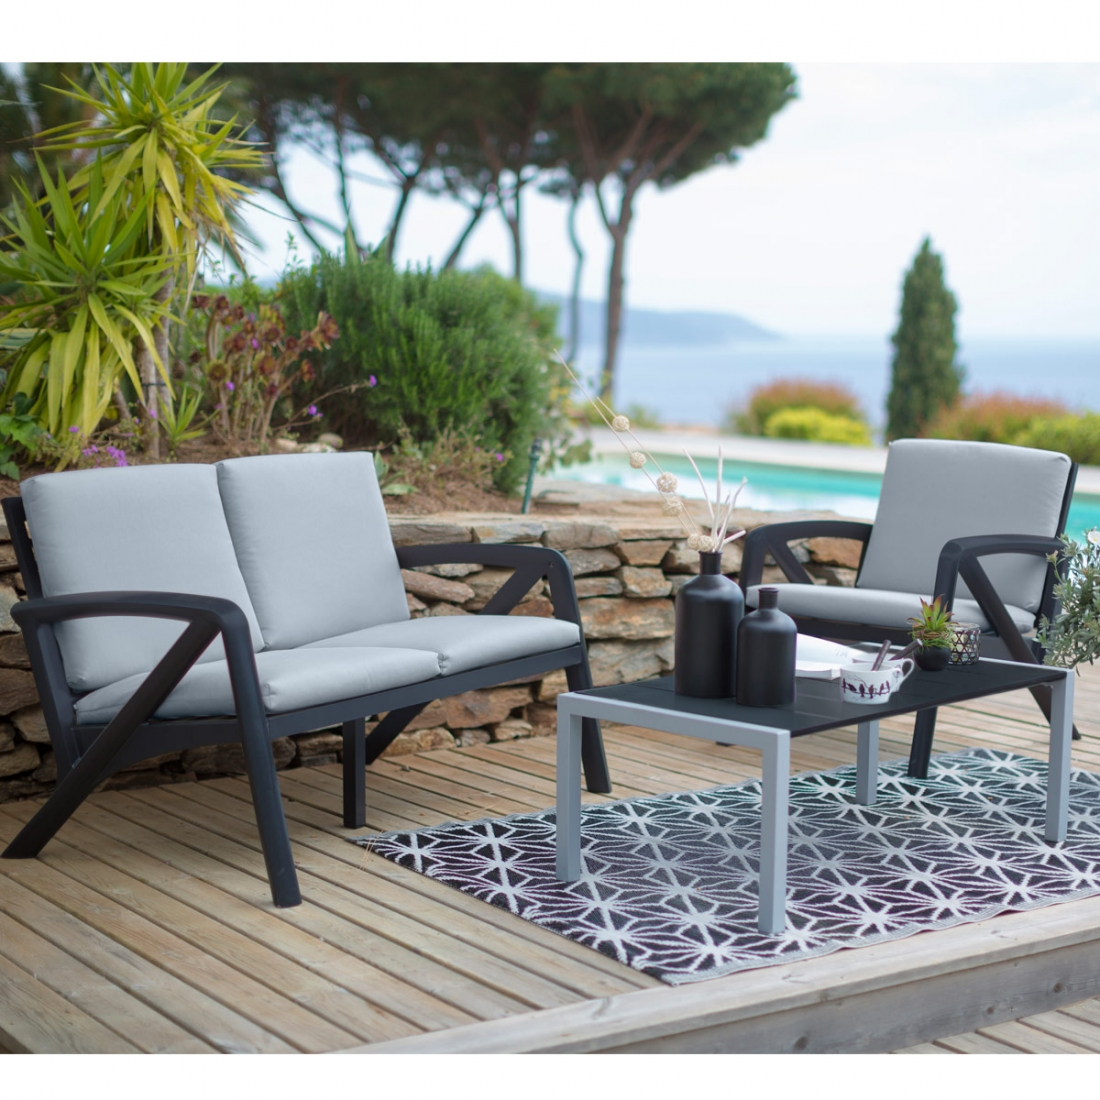 Salon de jardin lounge sunday barcelone design grosfillex for Les salons de jardin